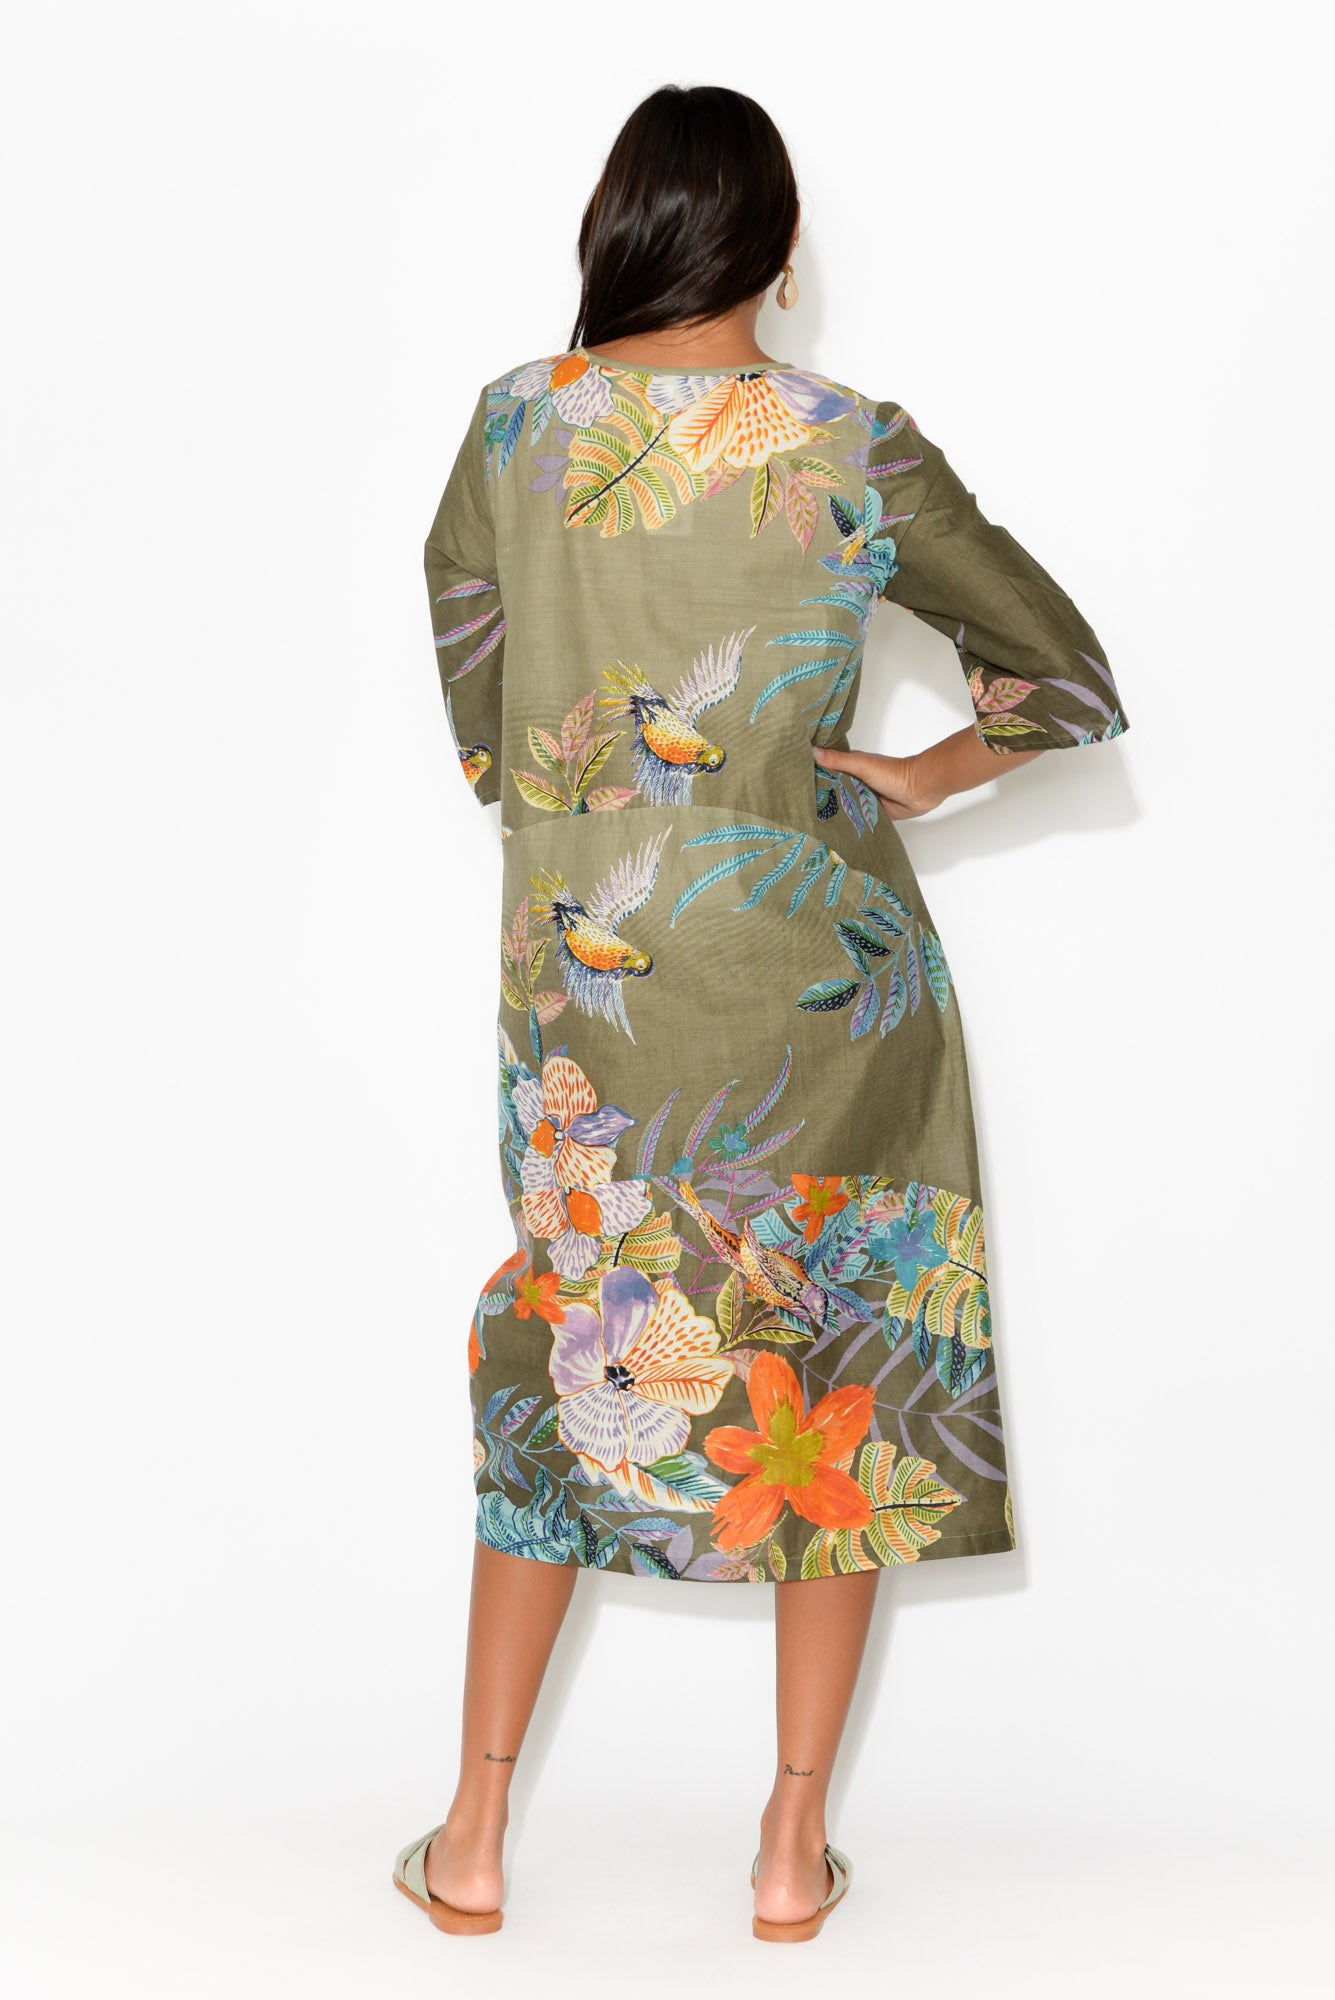 Maleny Khaki Floral Cotton Dress